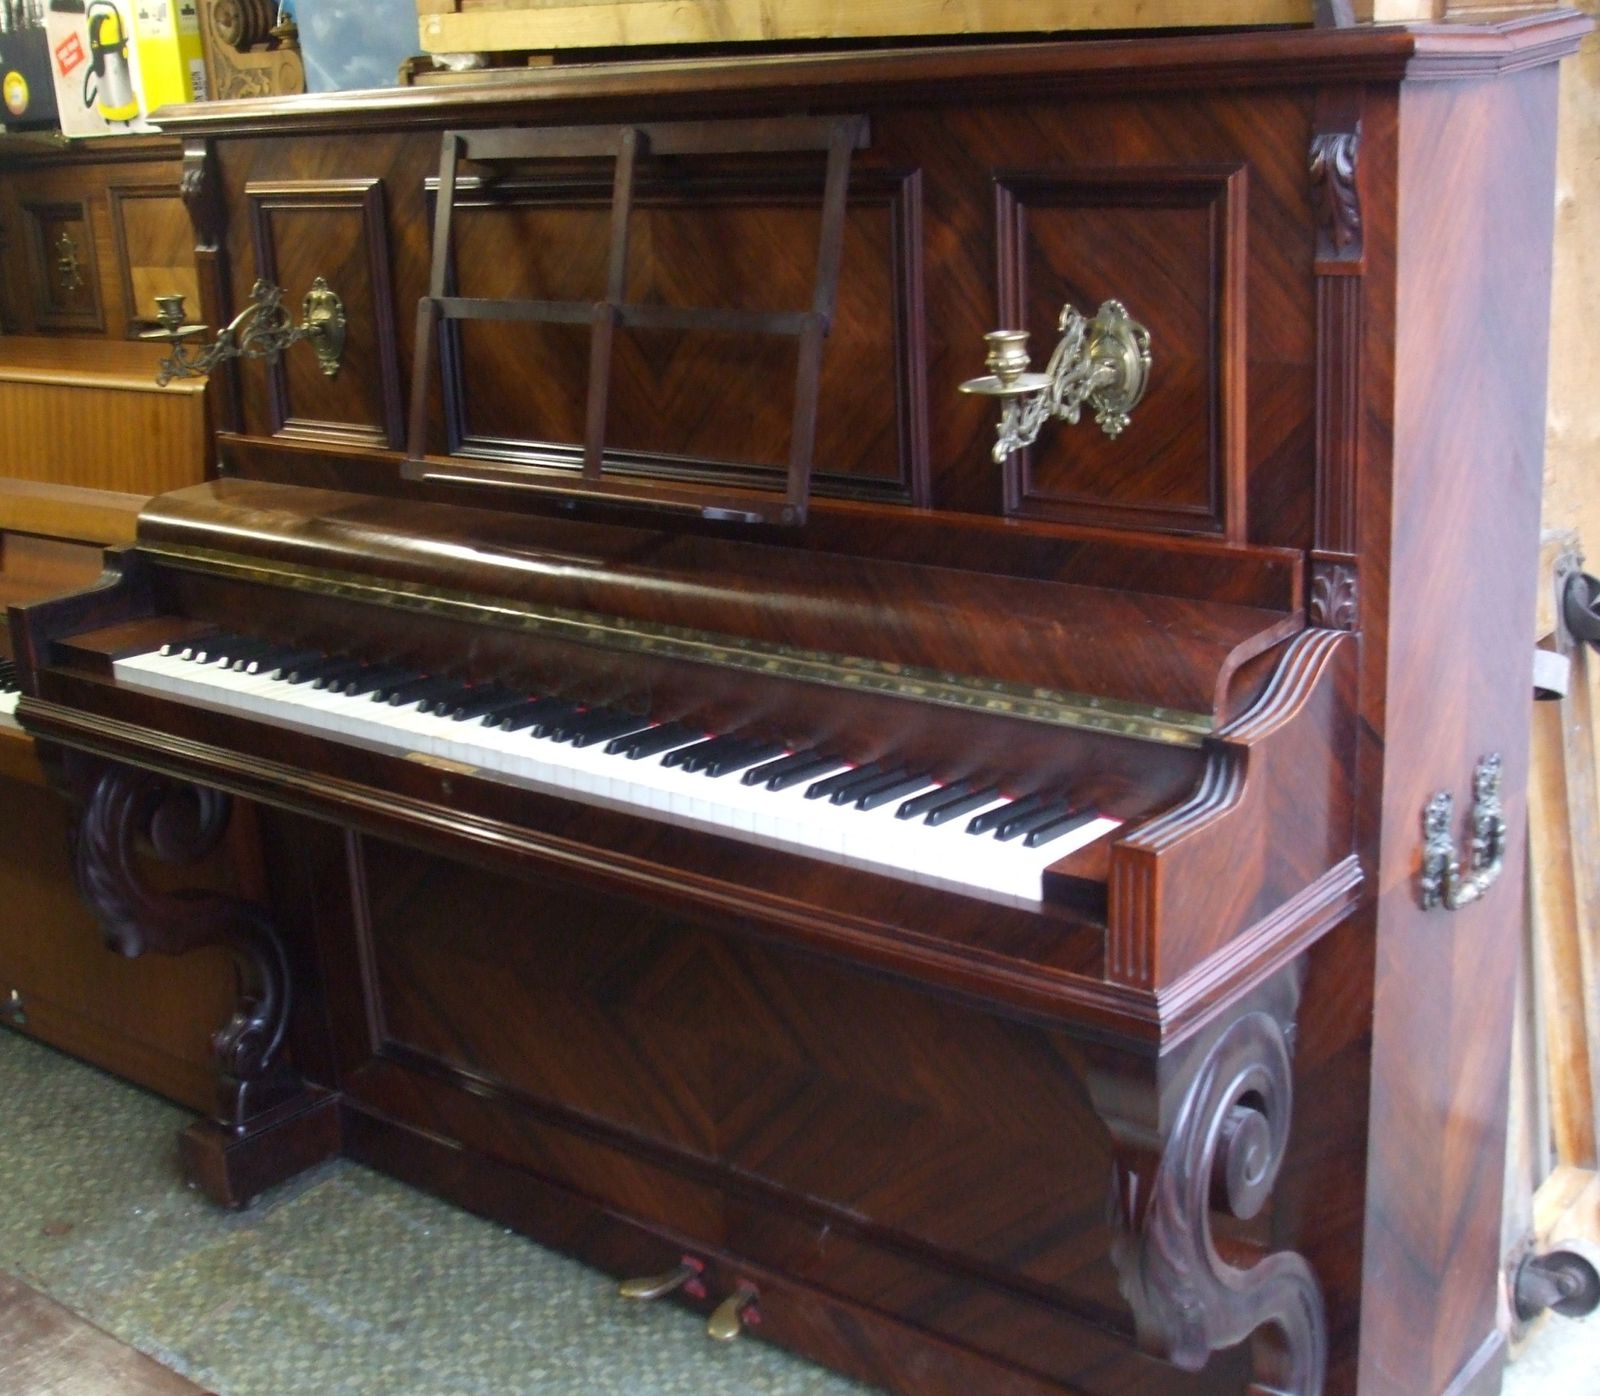 vente piano droit ancien. Black Bedroom Furniture Sets. Home Design Ideas